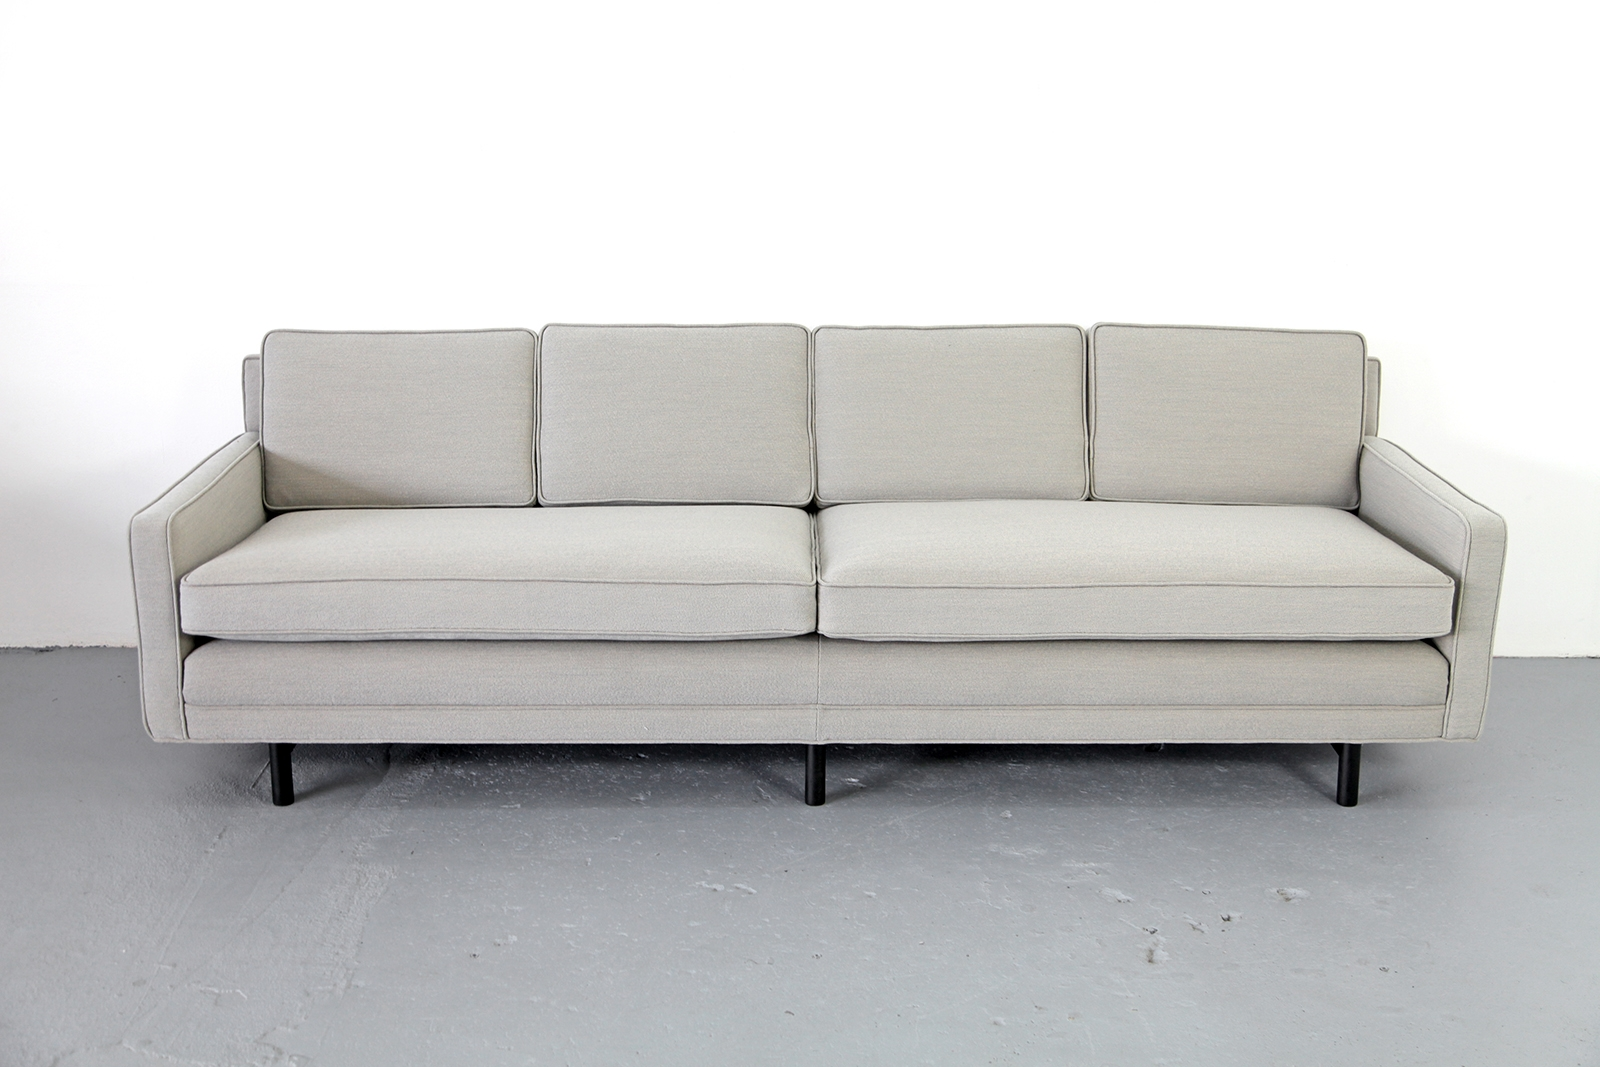 4 Seater Sofa Paul Mccobb For Directional For Sale At Pamono Within Four Seat Sofas (Photo 2 of 15)